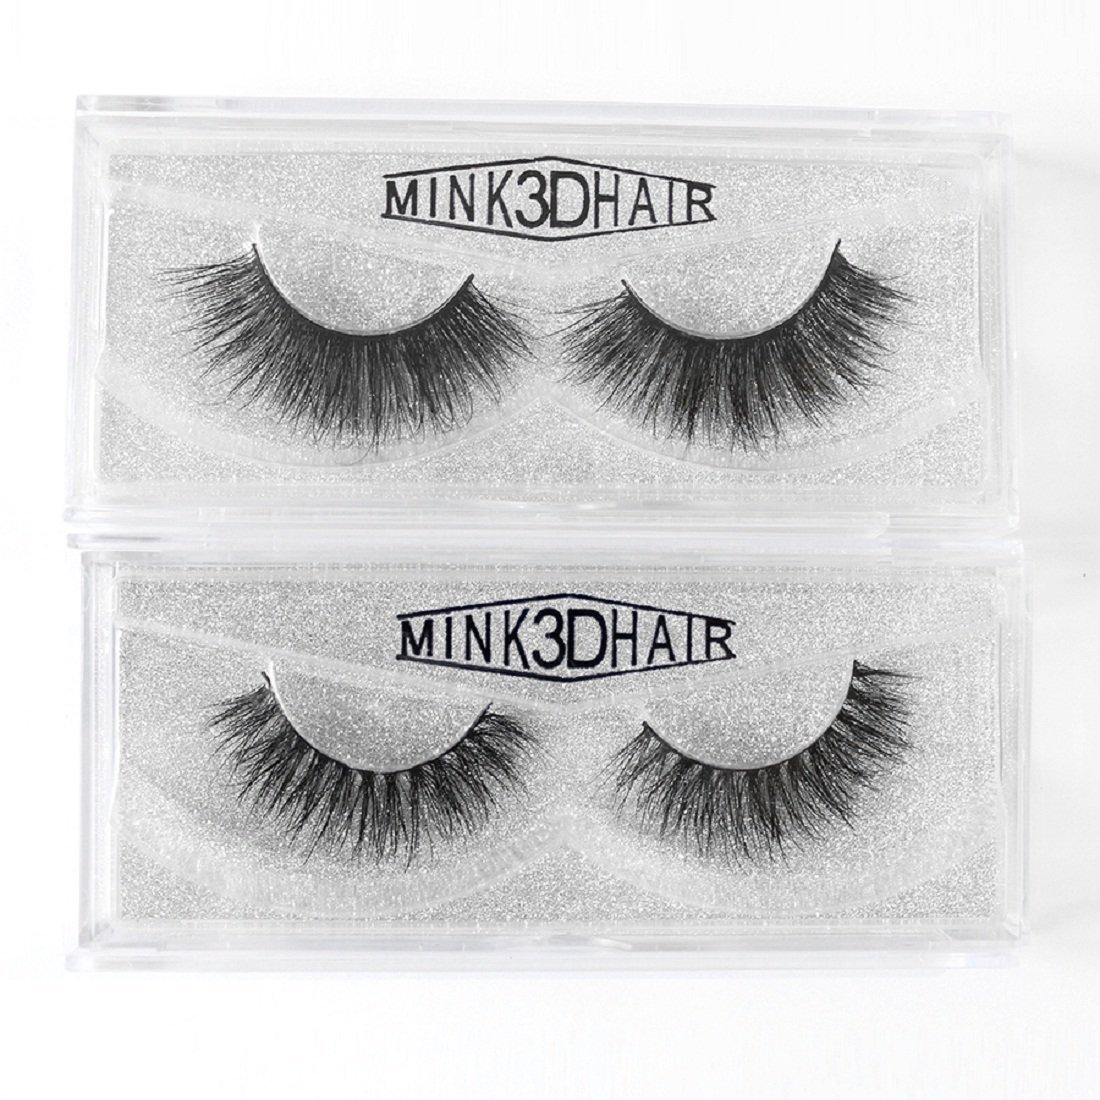 e0c202001d Online Cheap wholesale Mink 3D Lashes Natural Lashes Dream Long Cross  Handmade Reusable Fase Eyelash For Makeup 1 Pair Pack False Eyelashes &  Adhesives ...